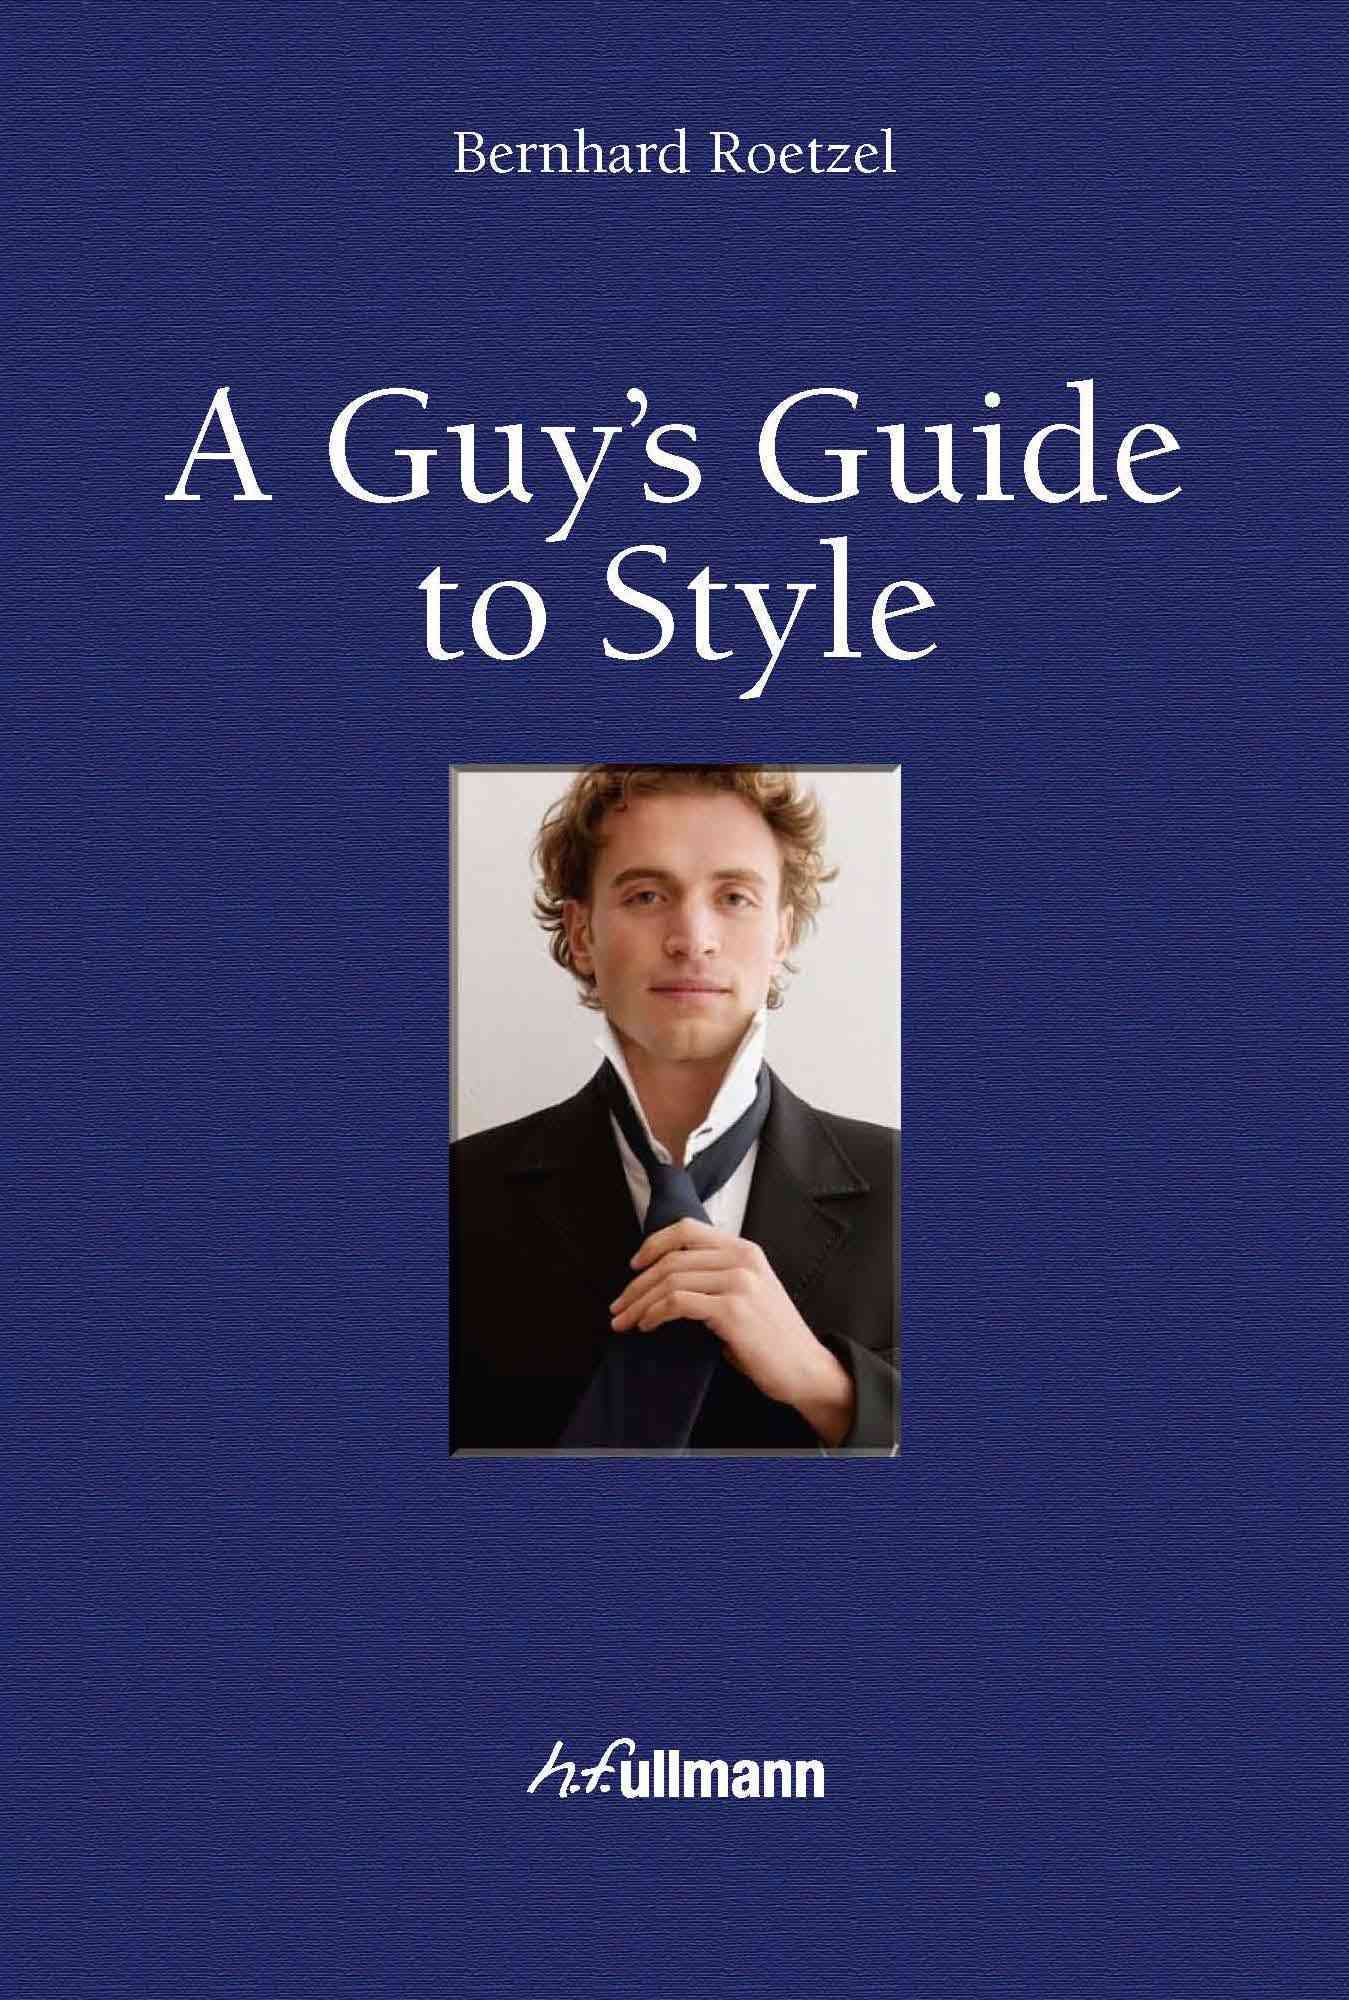 A Guys Guide to Style